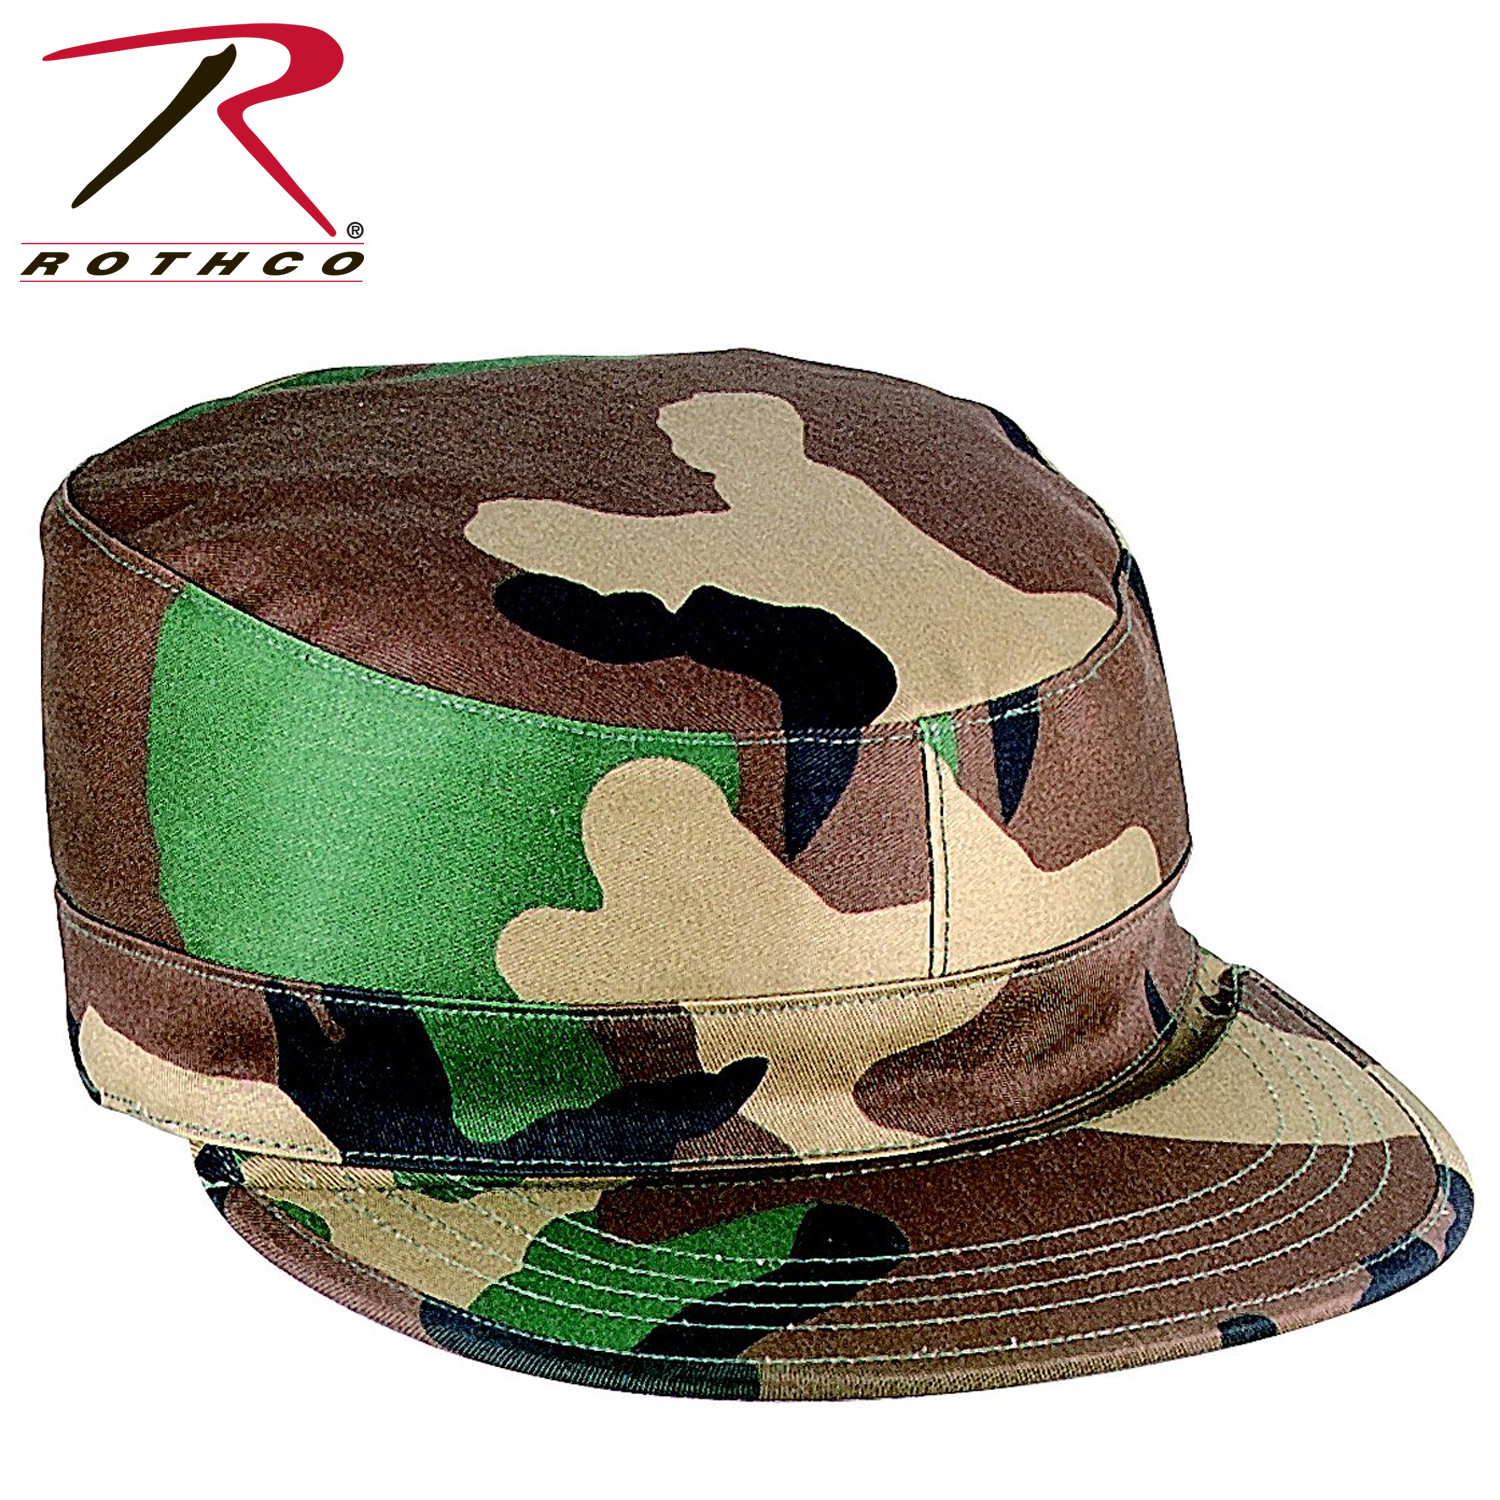 Rothco Gov t Spec 2 Ply Rip-Stop Army Ranger Fatigue Caps 3dfdc82d7ba